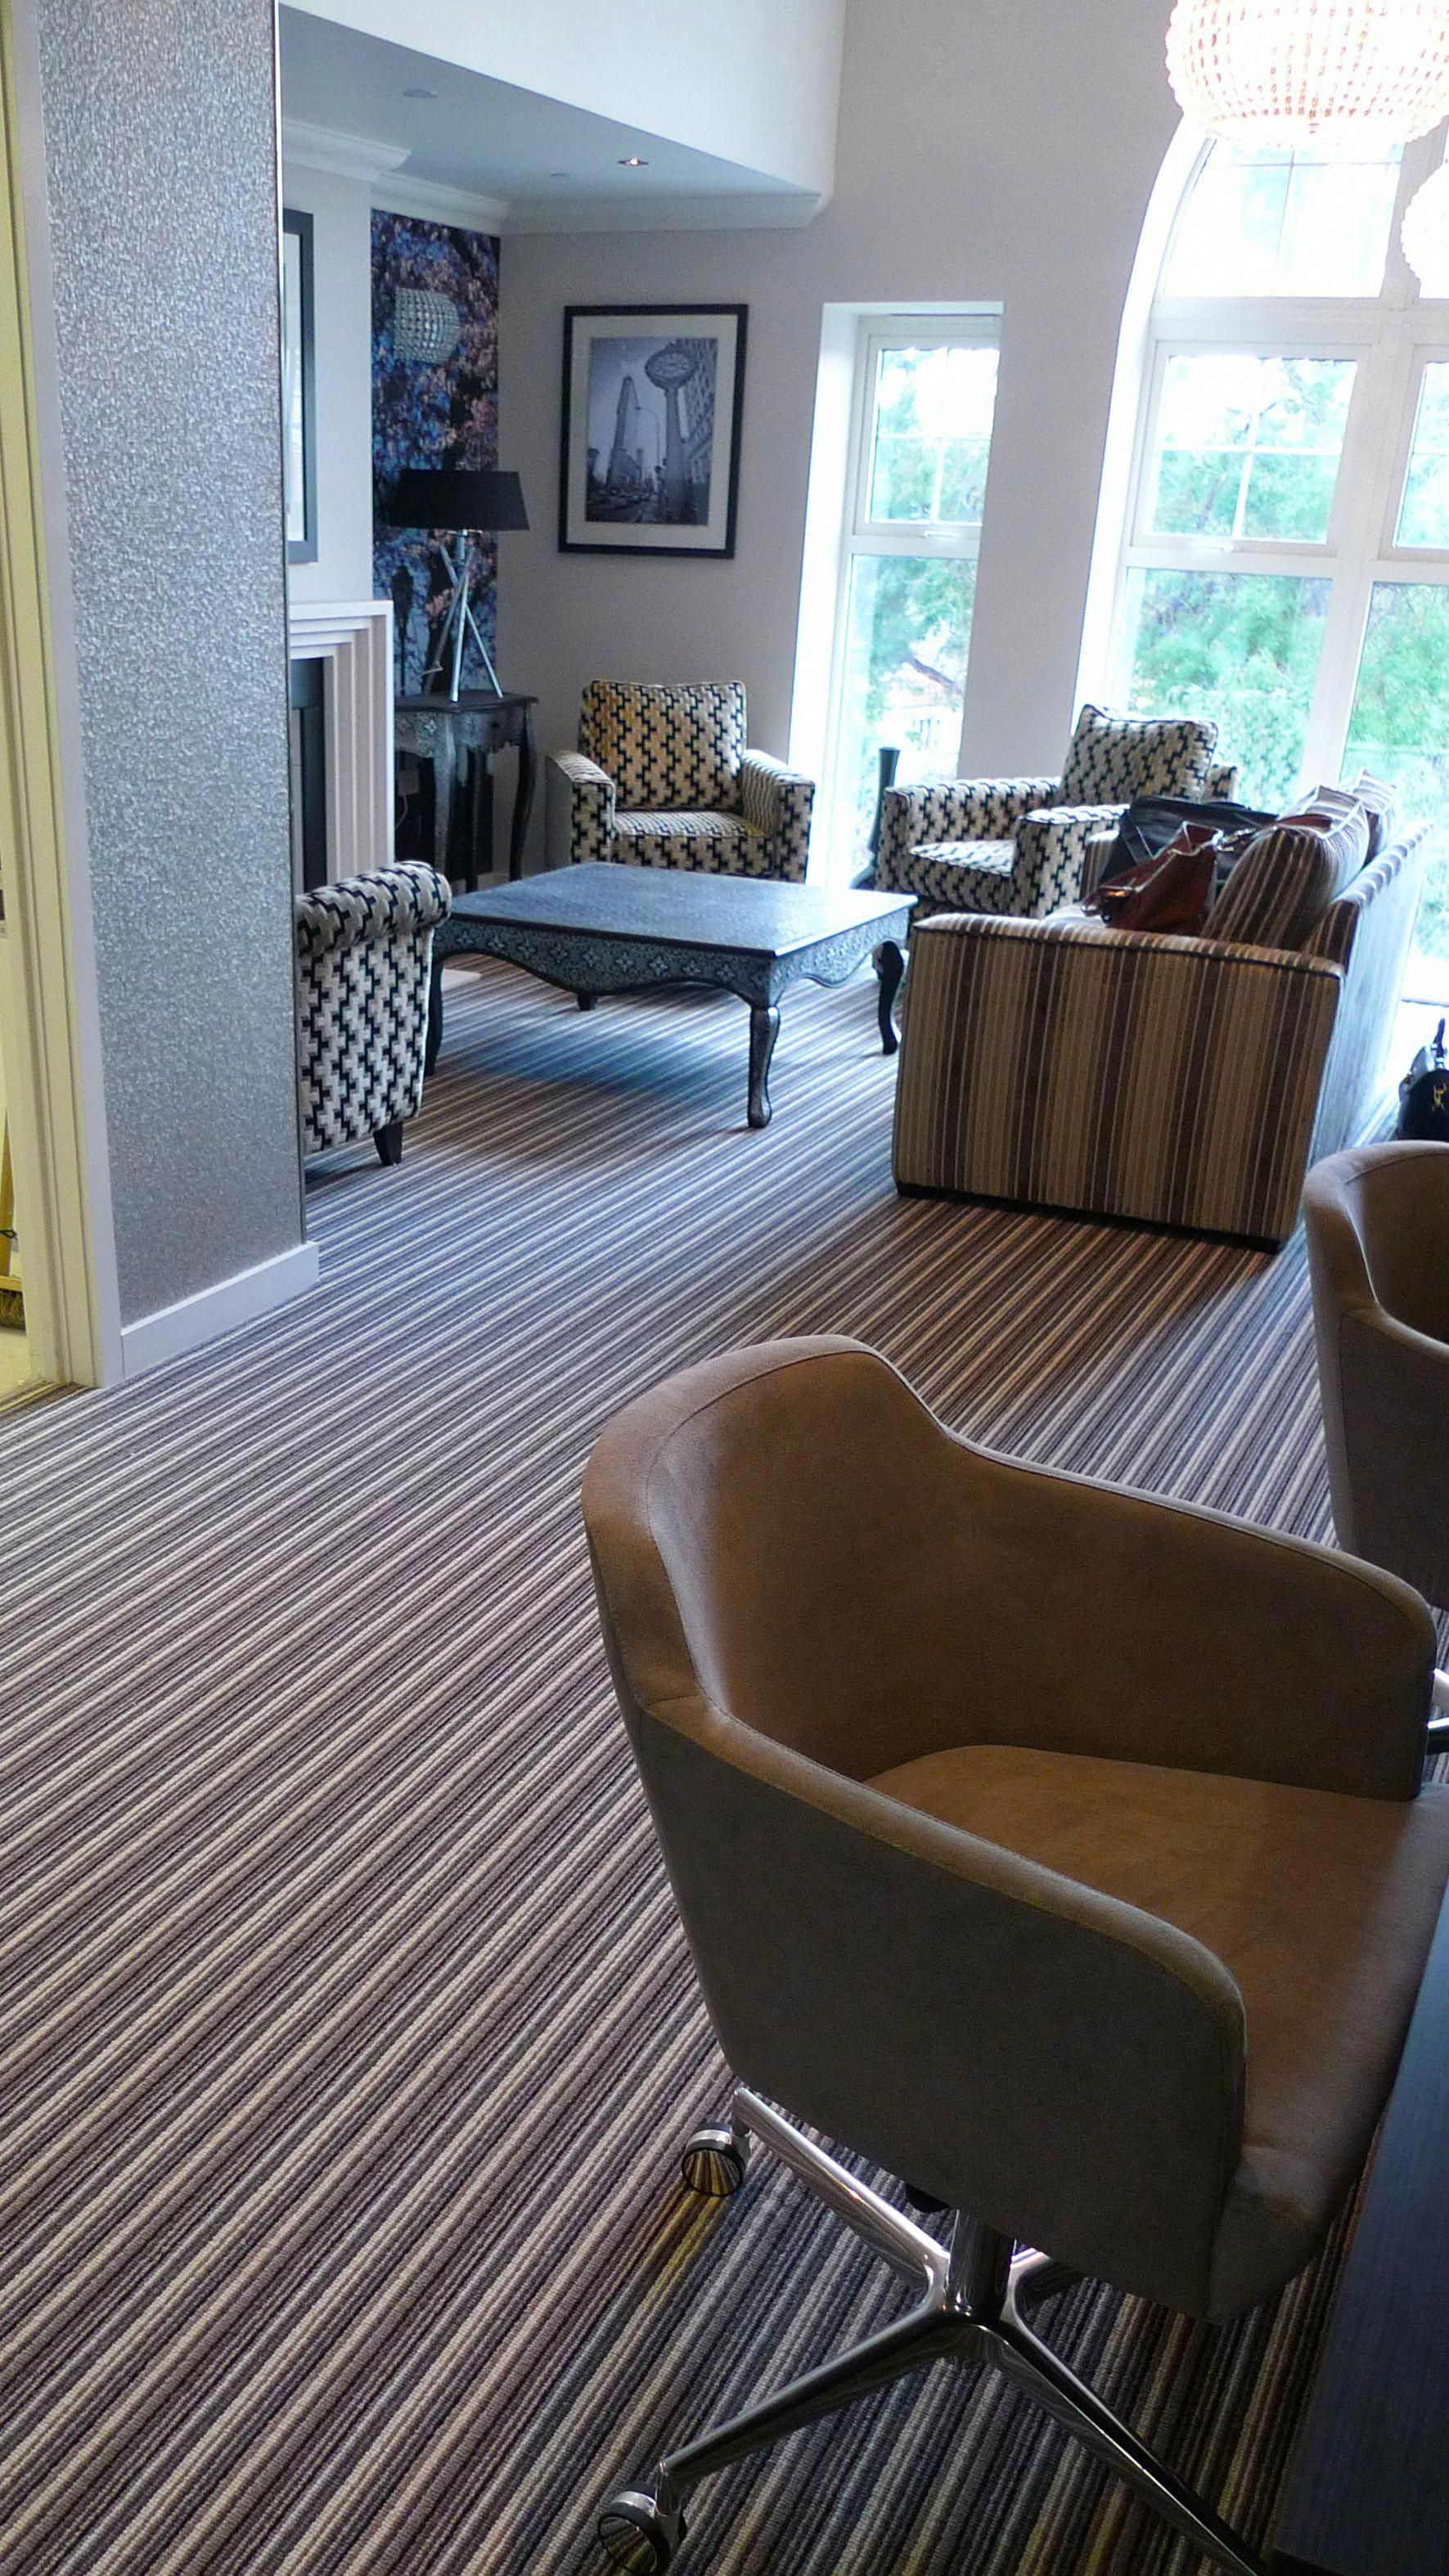 Made To Measure Carpet Runners CarpetsWithUnderlay Home